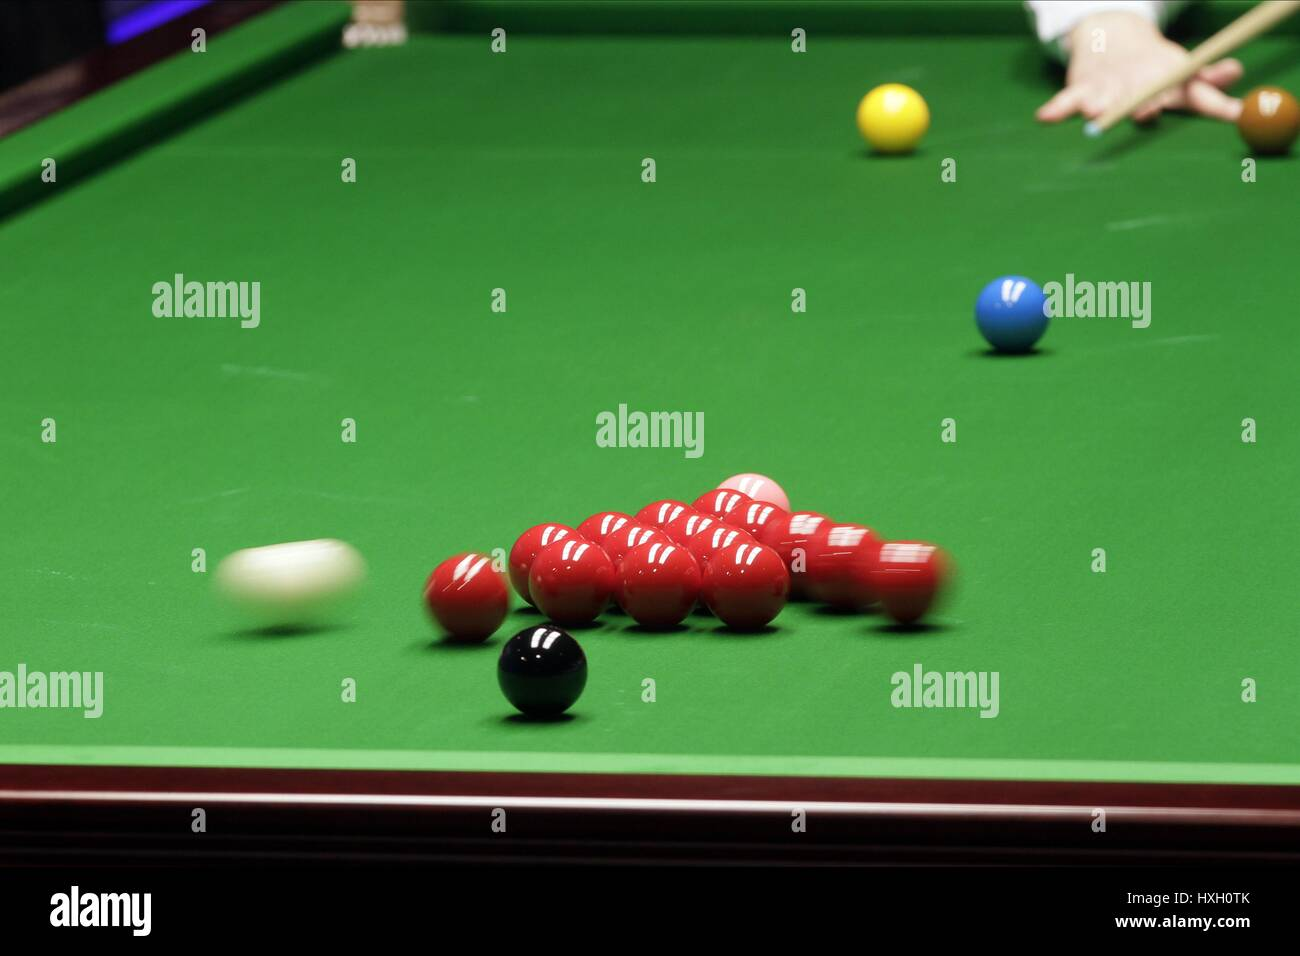 CUE BALL DURING BREAK WORLD SNOOKER CHAMPIONSHIP WORLD SNOOKER CHAMPIONSHIP THE CRUCIBLE SHEFFIELD ENGLAND 20 April - Stock Image